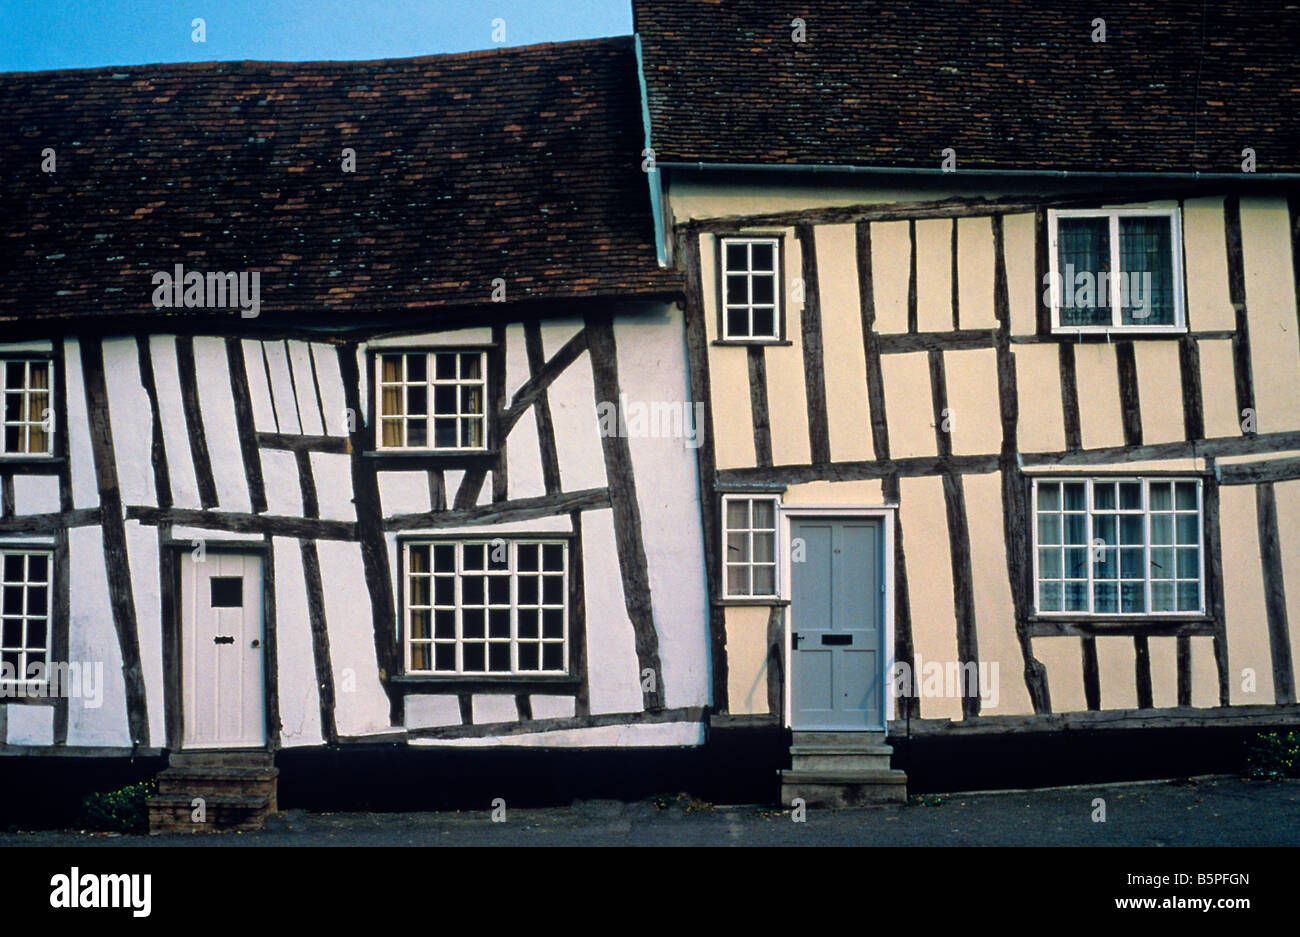 Timbered buildings in Lavenham Suffolk - Stock Image